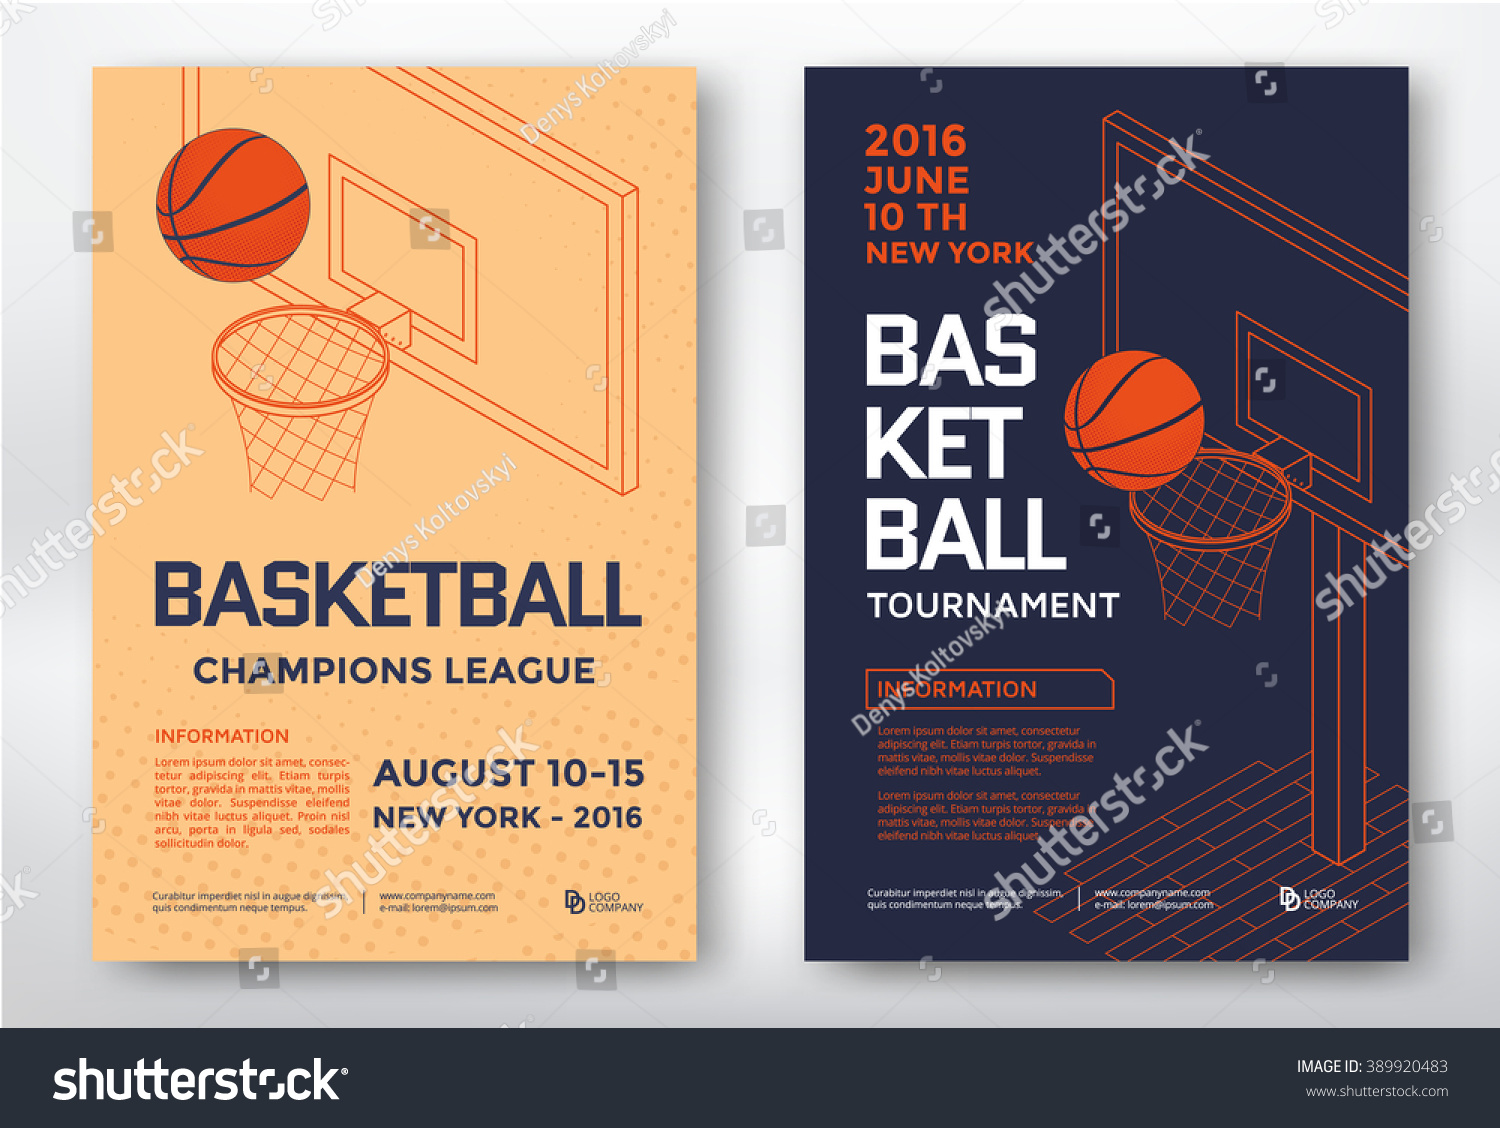 similar images stock photos vectors of basketball tournament